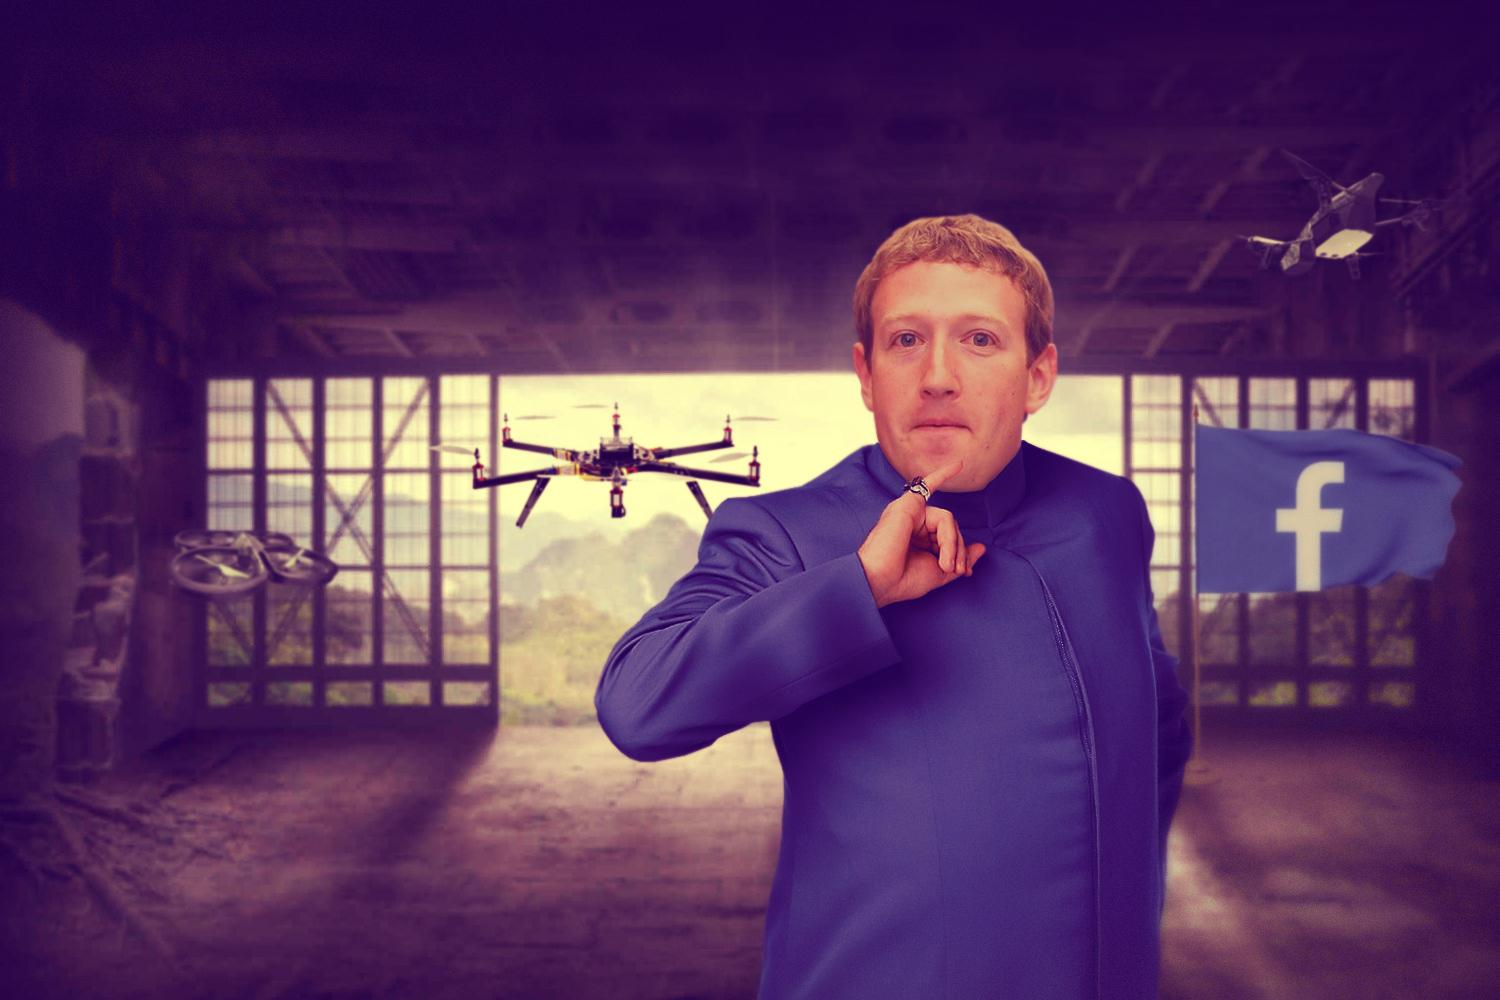 Mark-Zuckerberg-Internet-laser-drones-for-good-or-for-evil-2